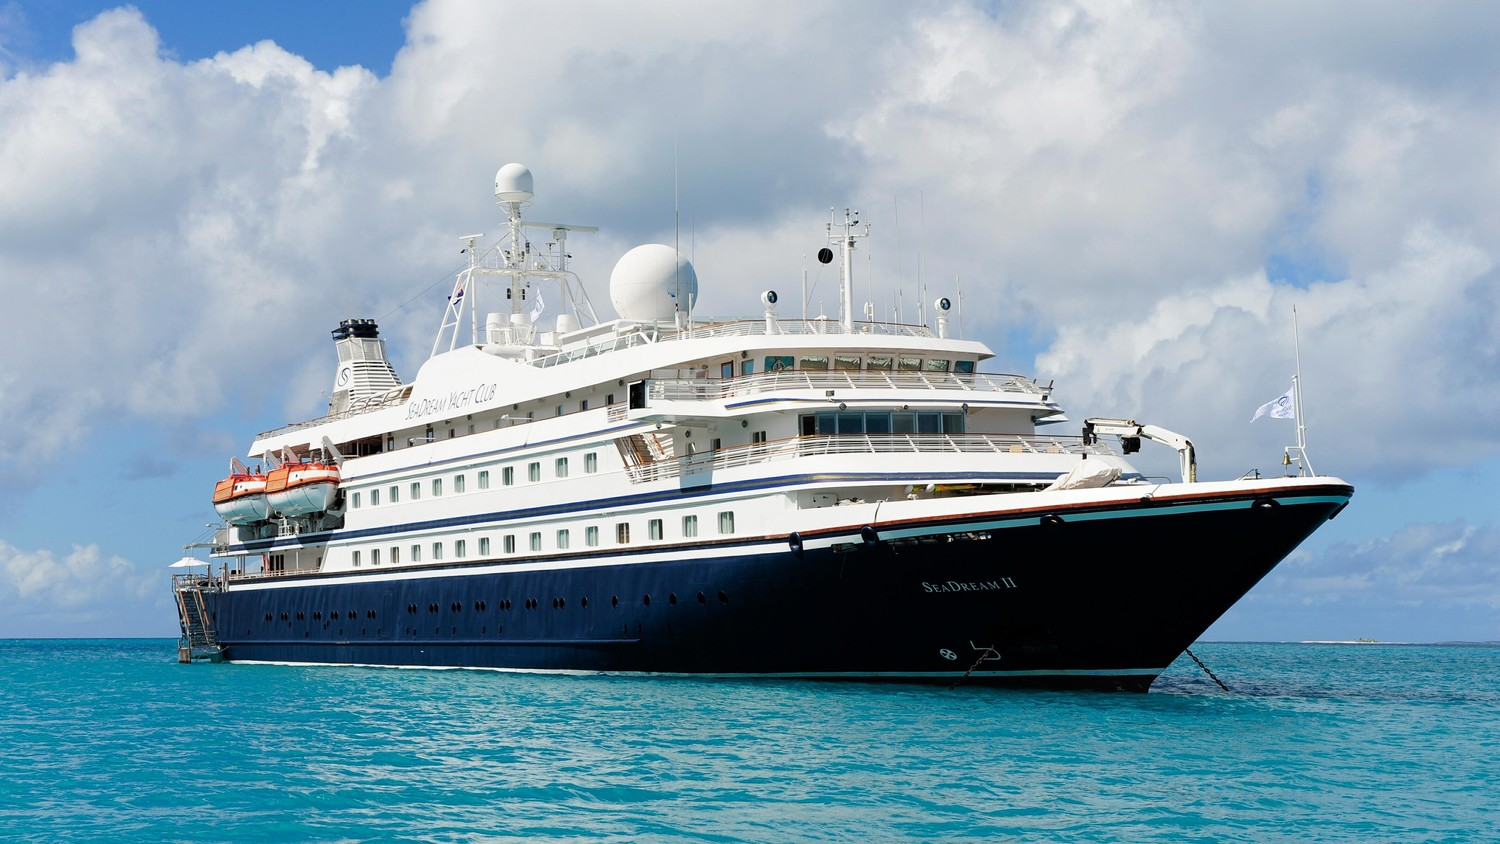 The Ins And Outs Of Getting Married Aboard A Cruise Ship Martha